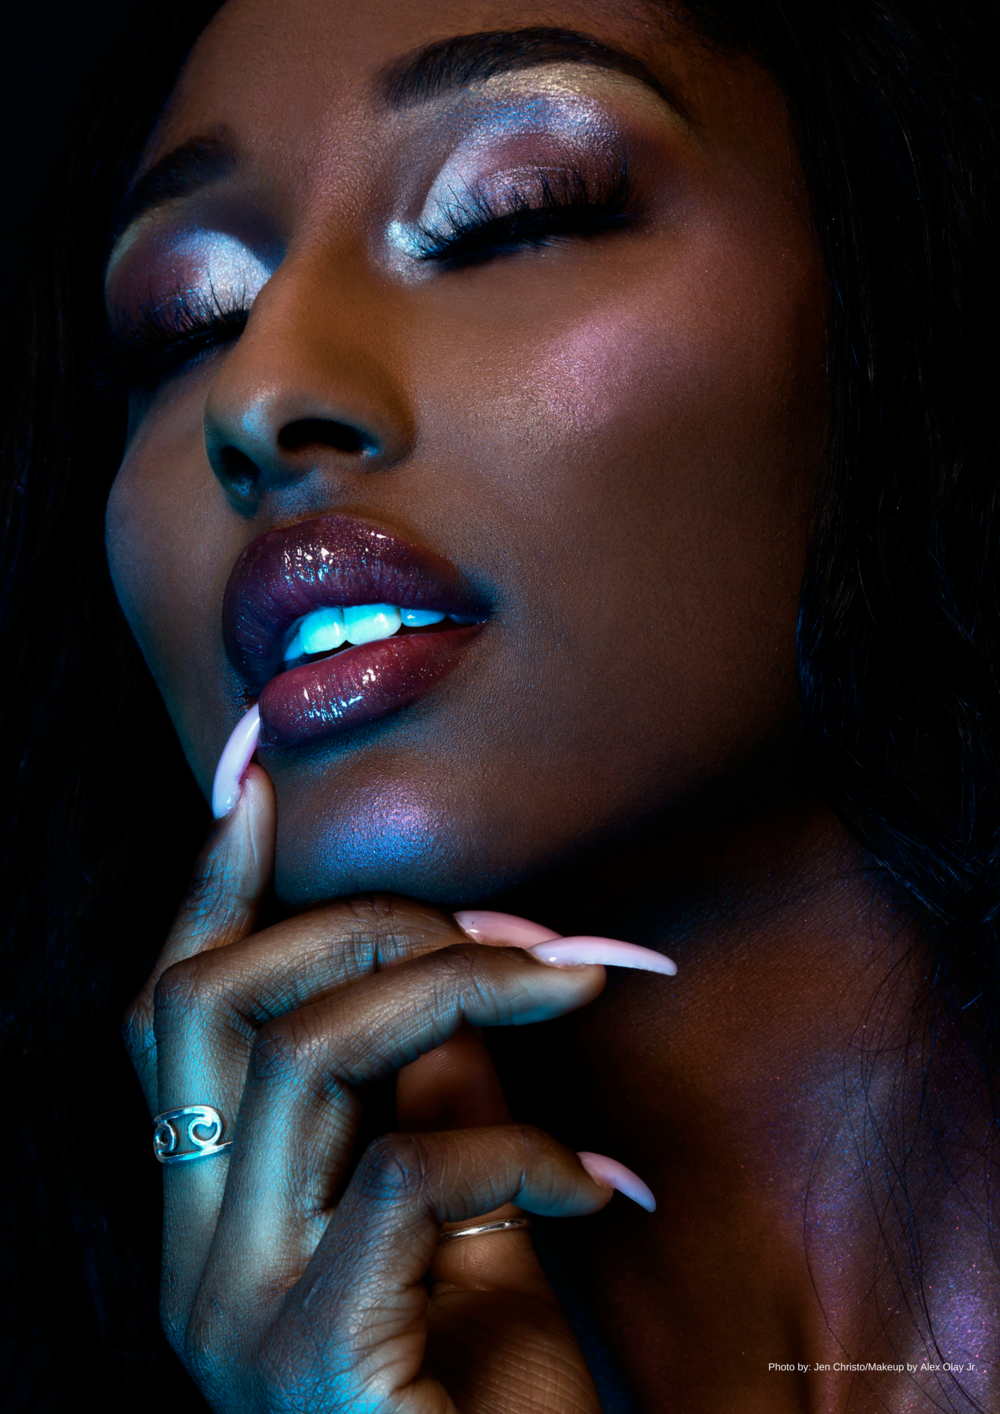 Photo by_ Jen Christo%2FMakeup by Alex Olay Jr..png